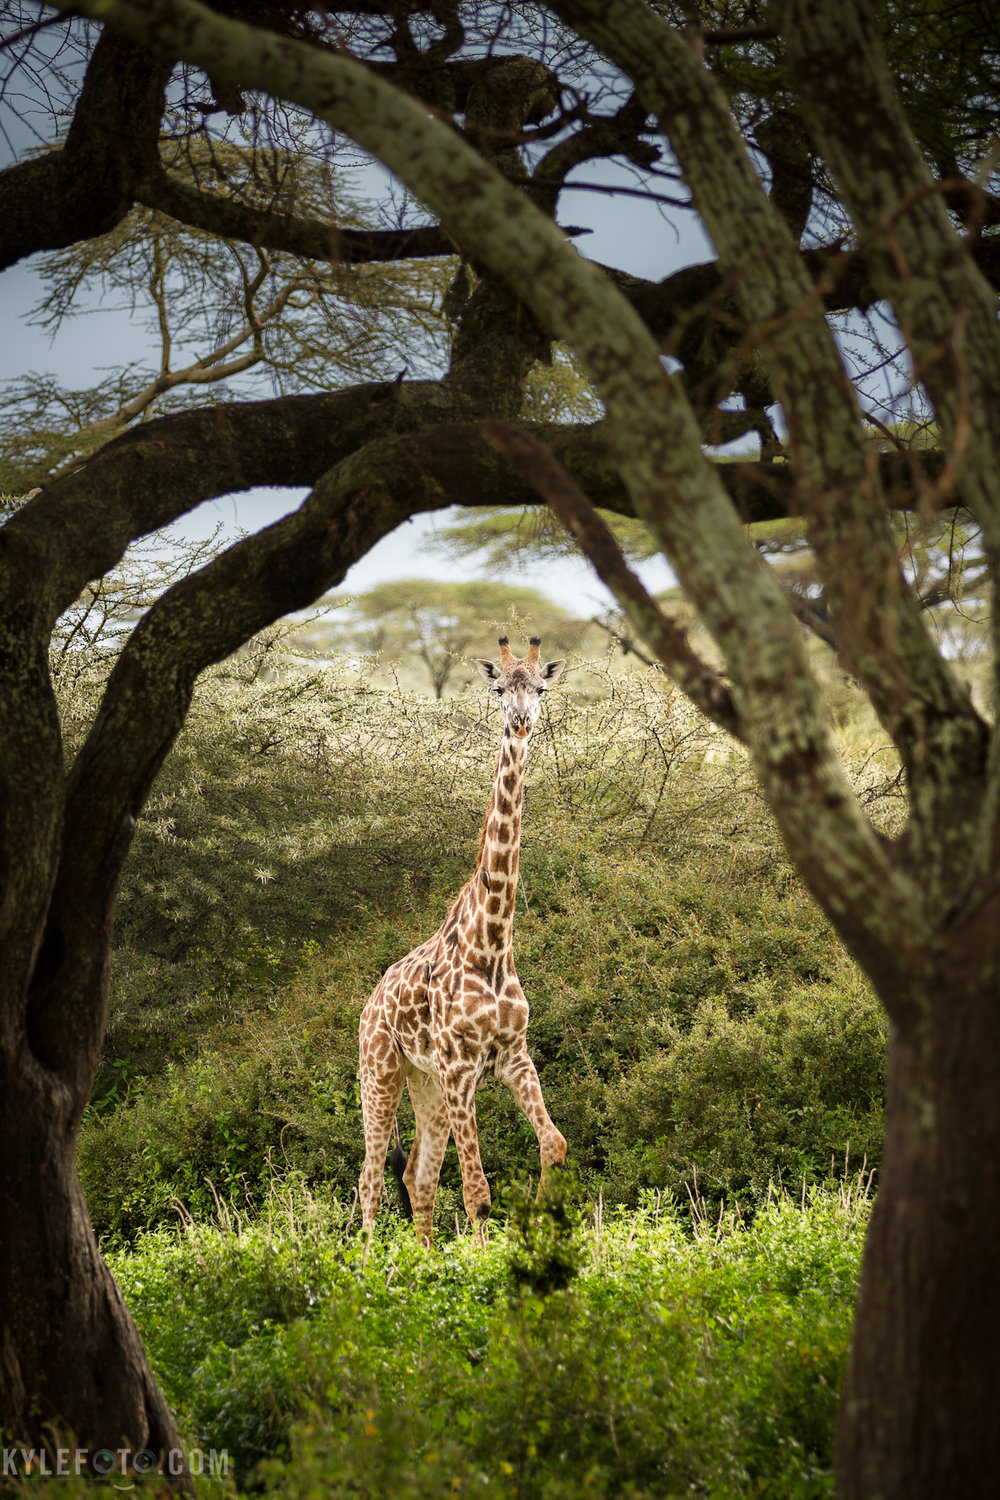 wildlife-wed-giraffe-11.jpg